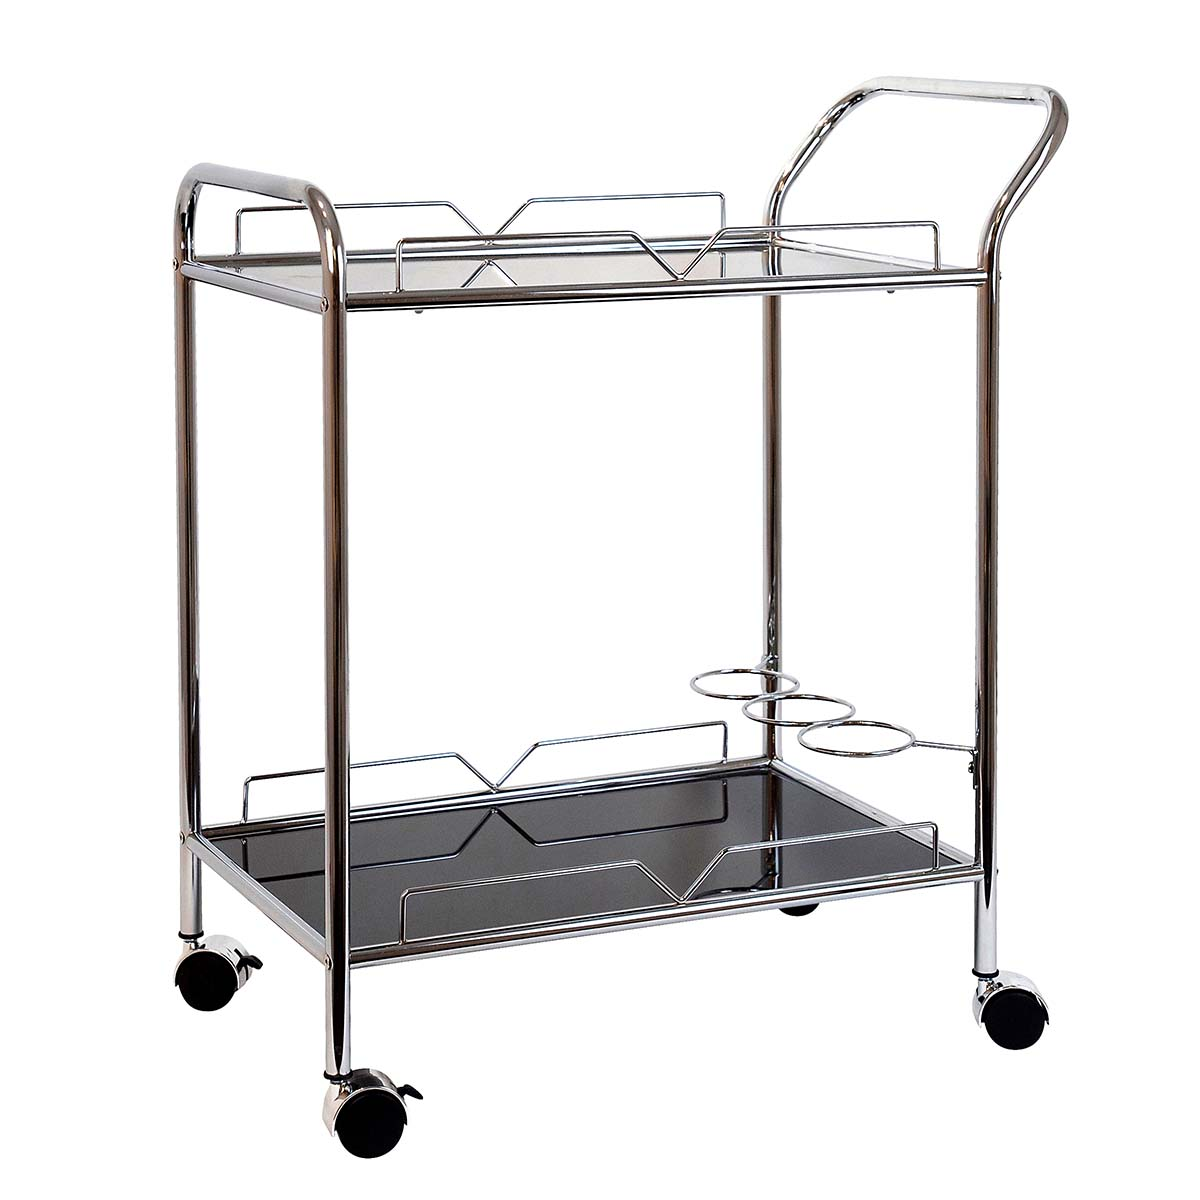 DEAN RECT BAR TROLLEY 78 x 80cm in silver/black